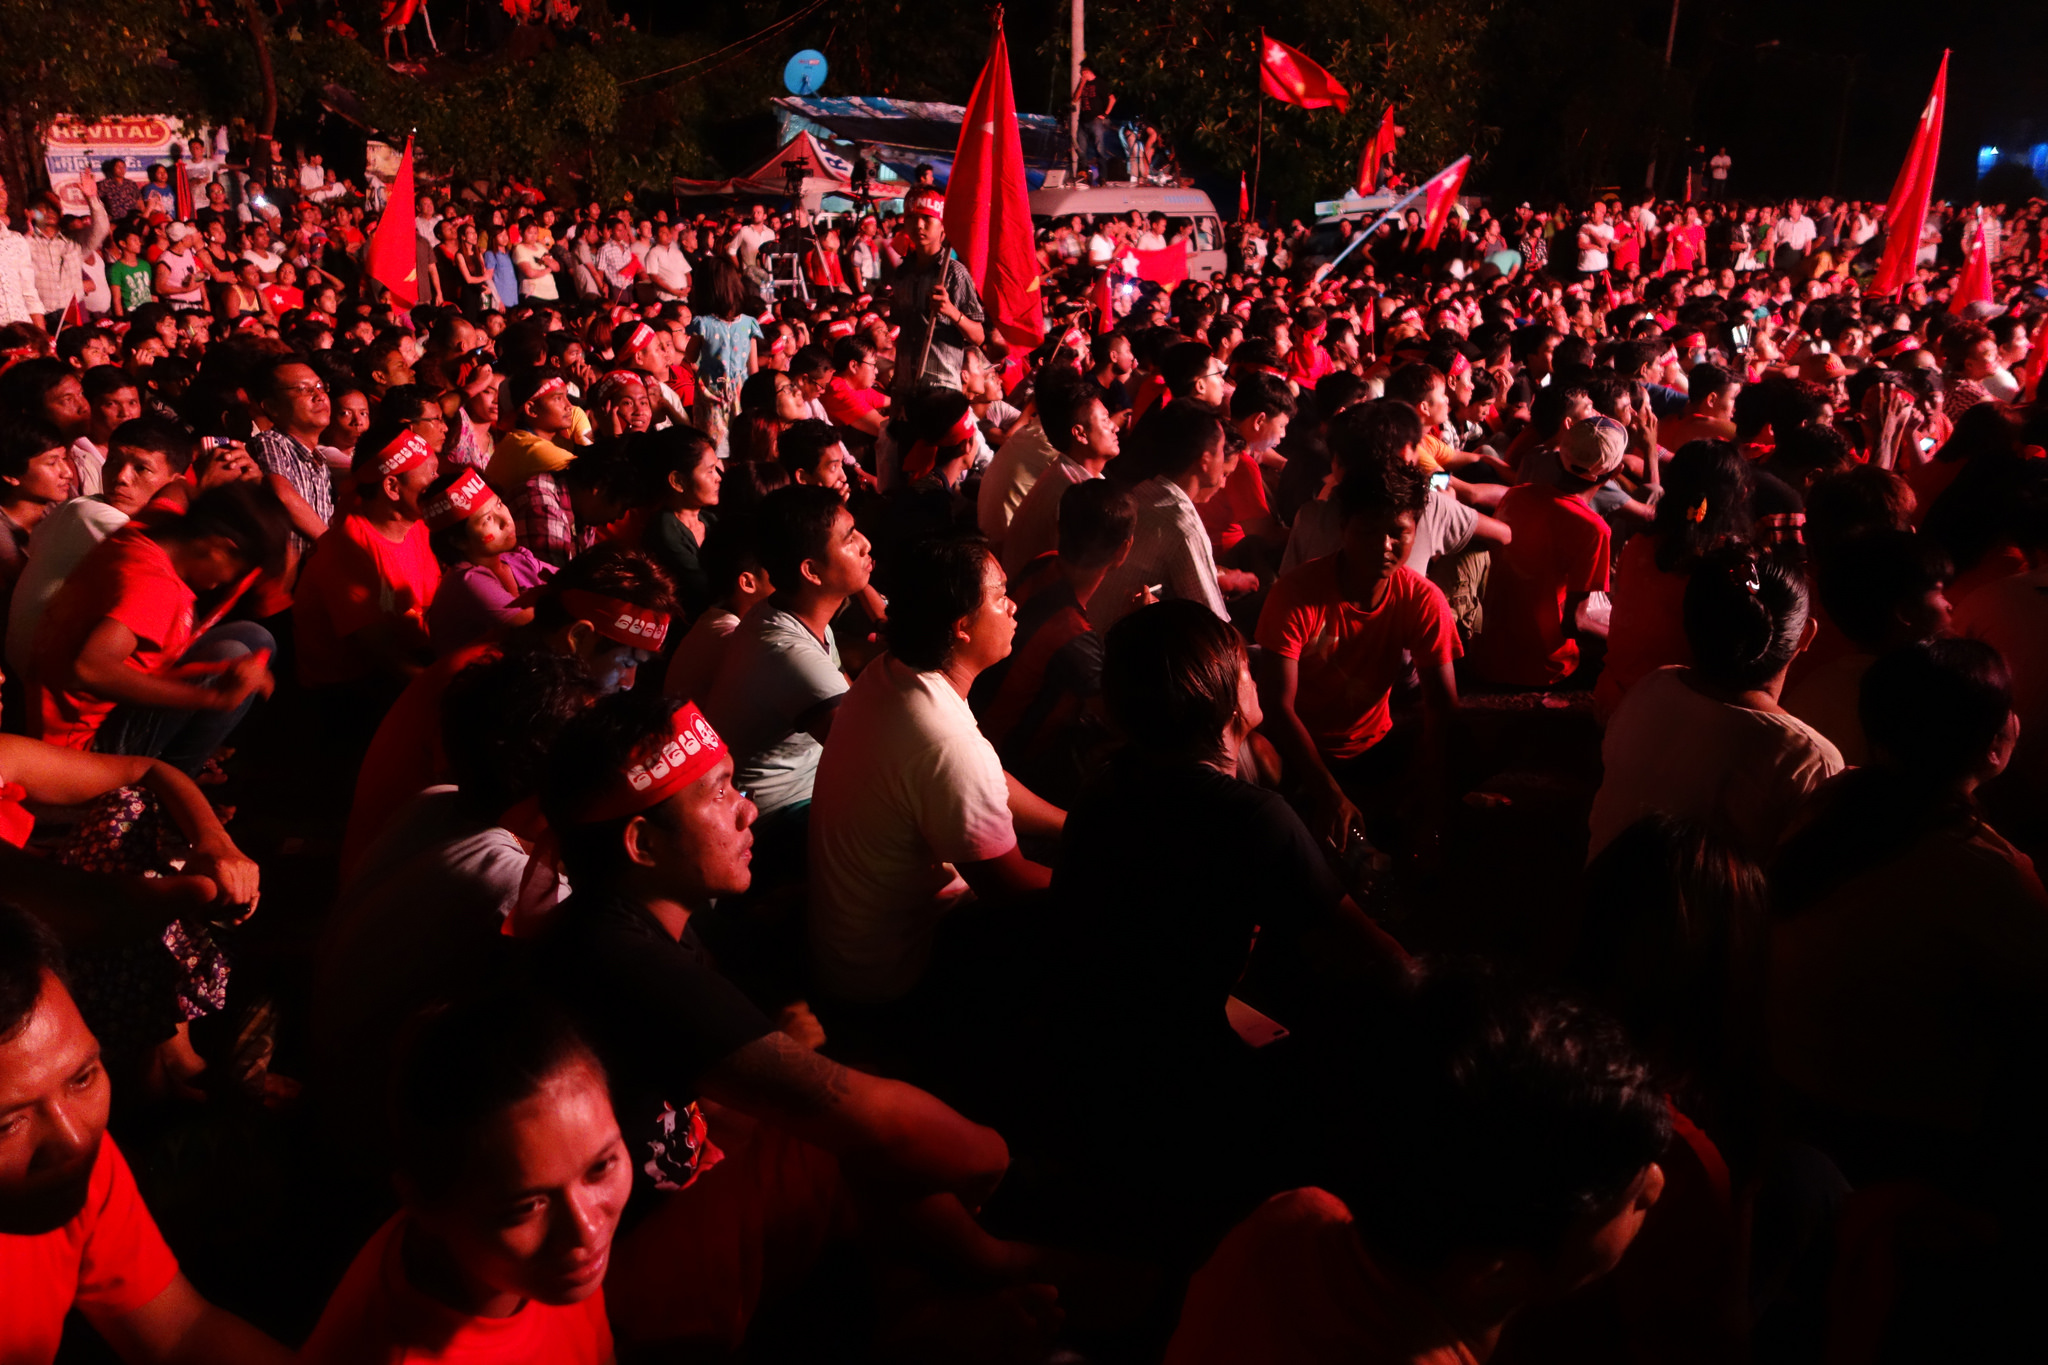 Happy crowd waiting for election results outside NLD HQ. Photo by judithbluepool on November 10, 2015. (CC BY-NC 2.0)